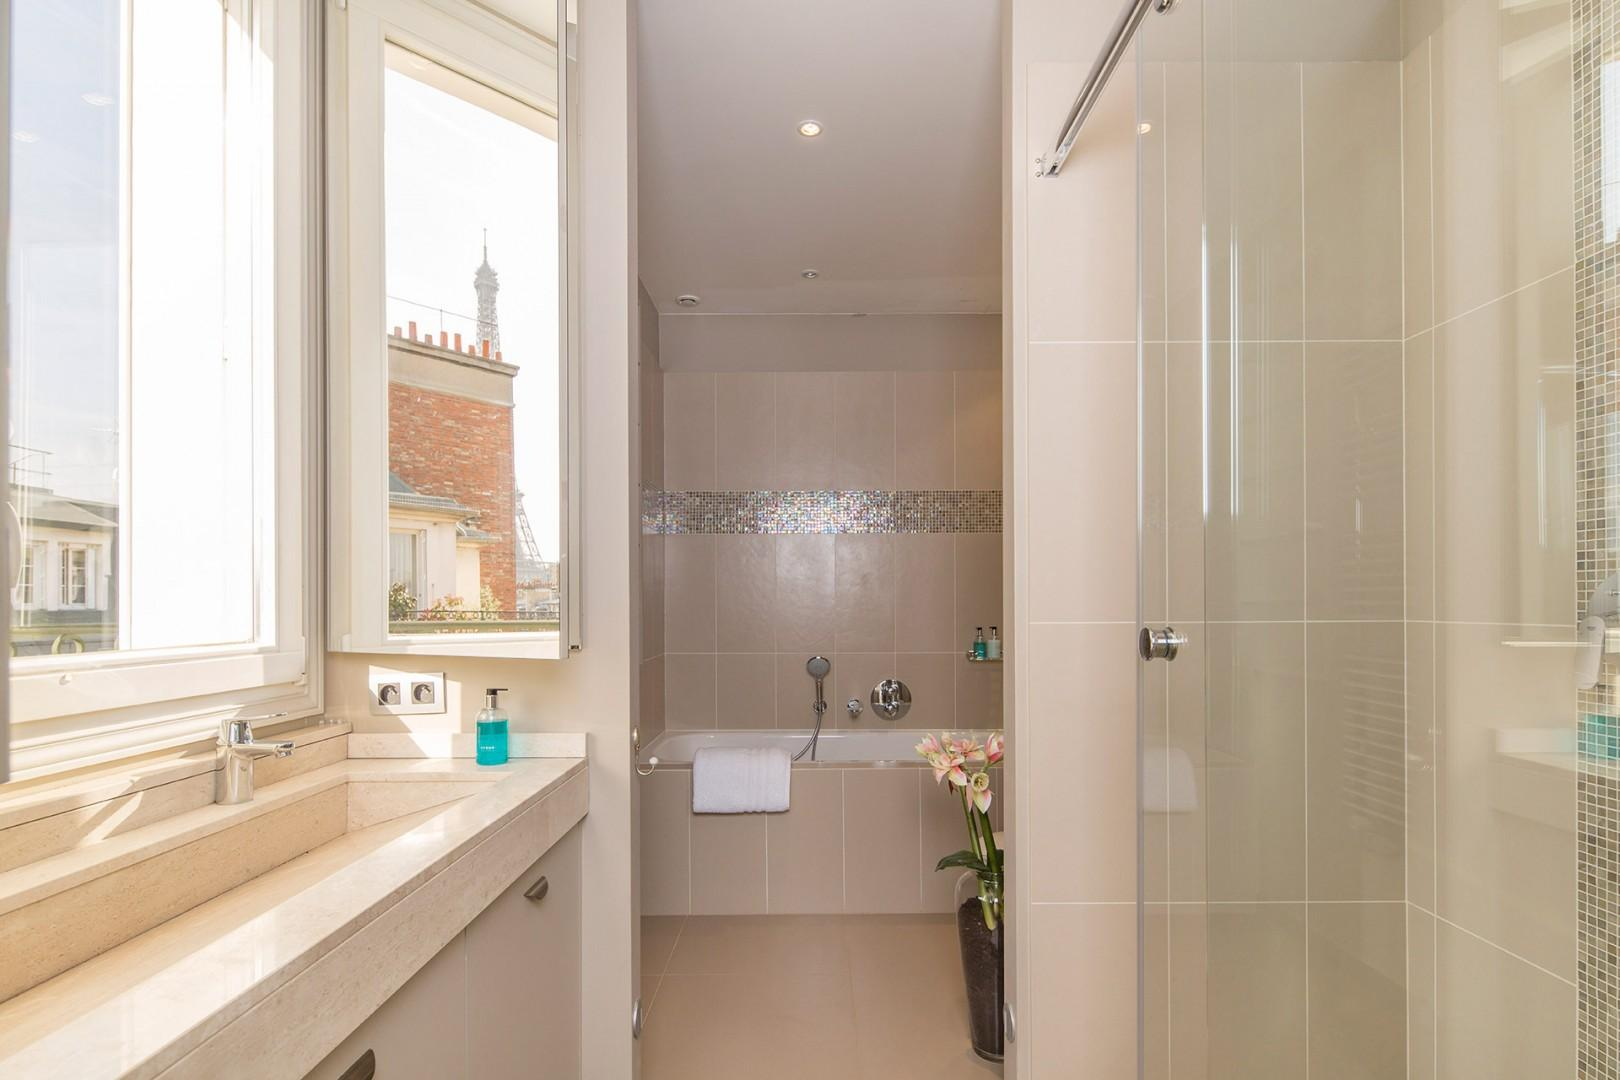 The luxurious en suite bathroom is equipped with a bathtub, shower, sink & toilet.